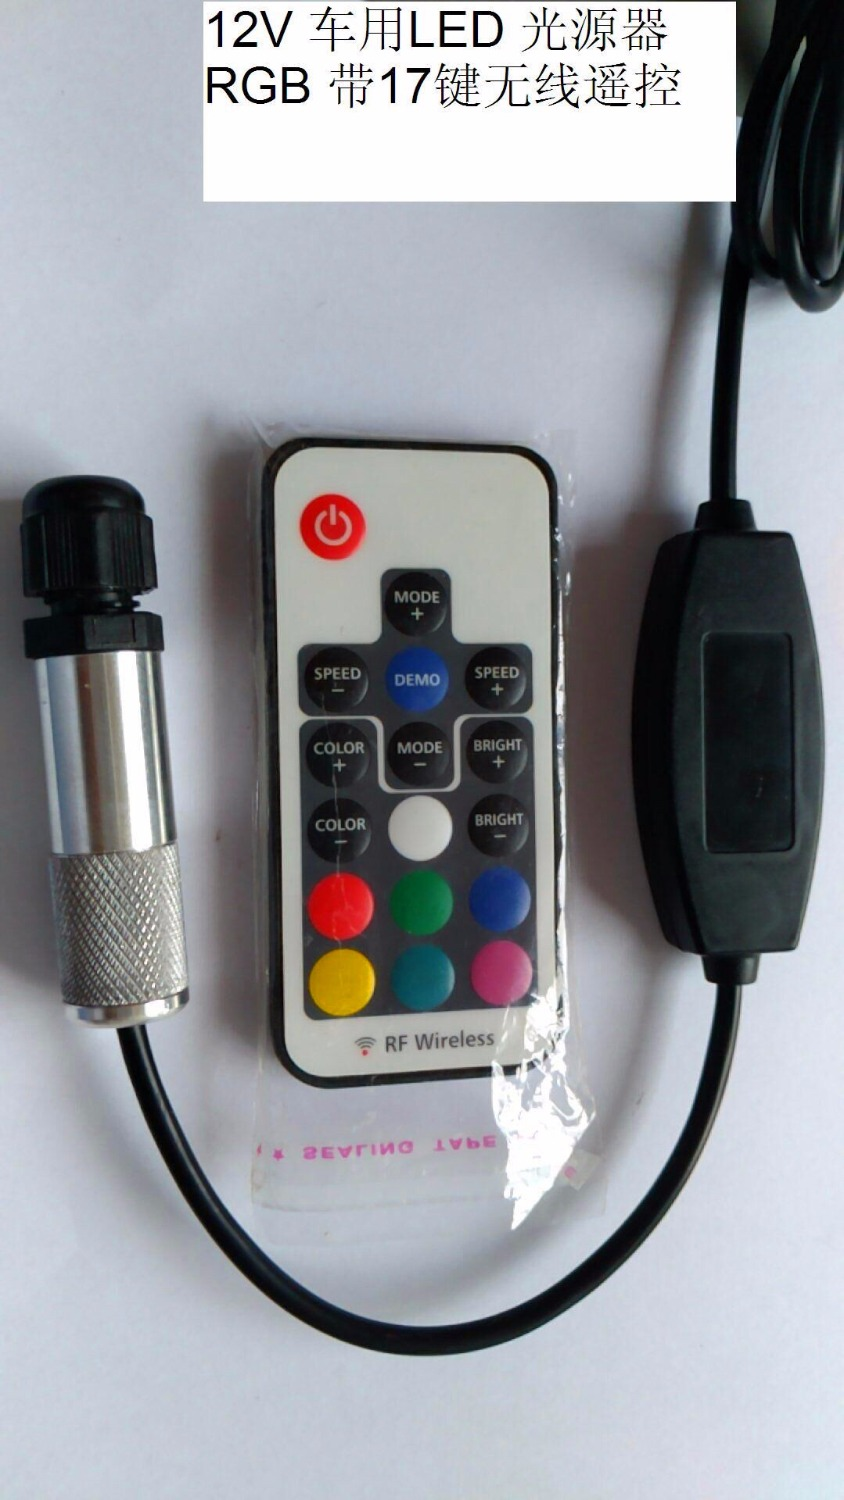 3W LED RGB light engine with 17 key RF touch remote,DC12V input;for car use